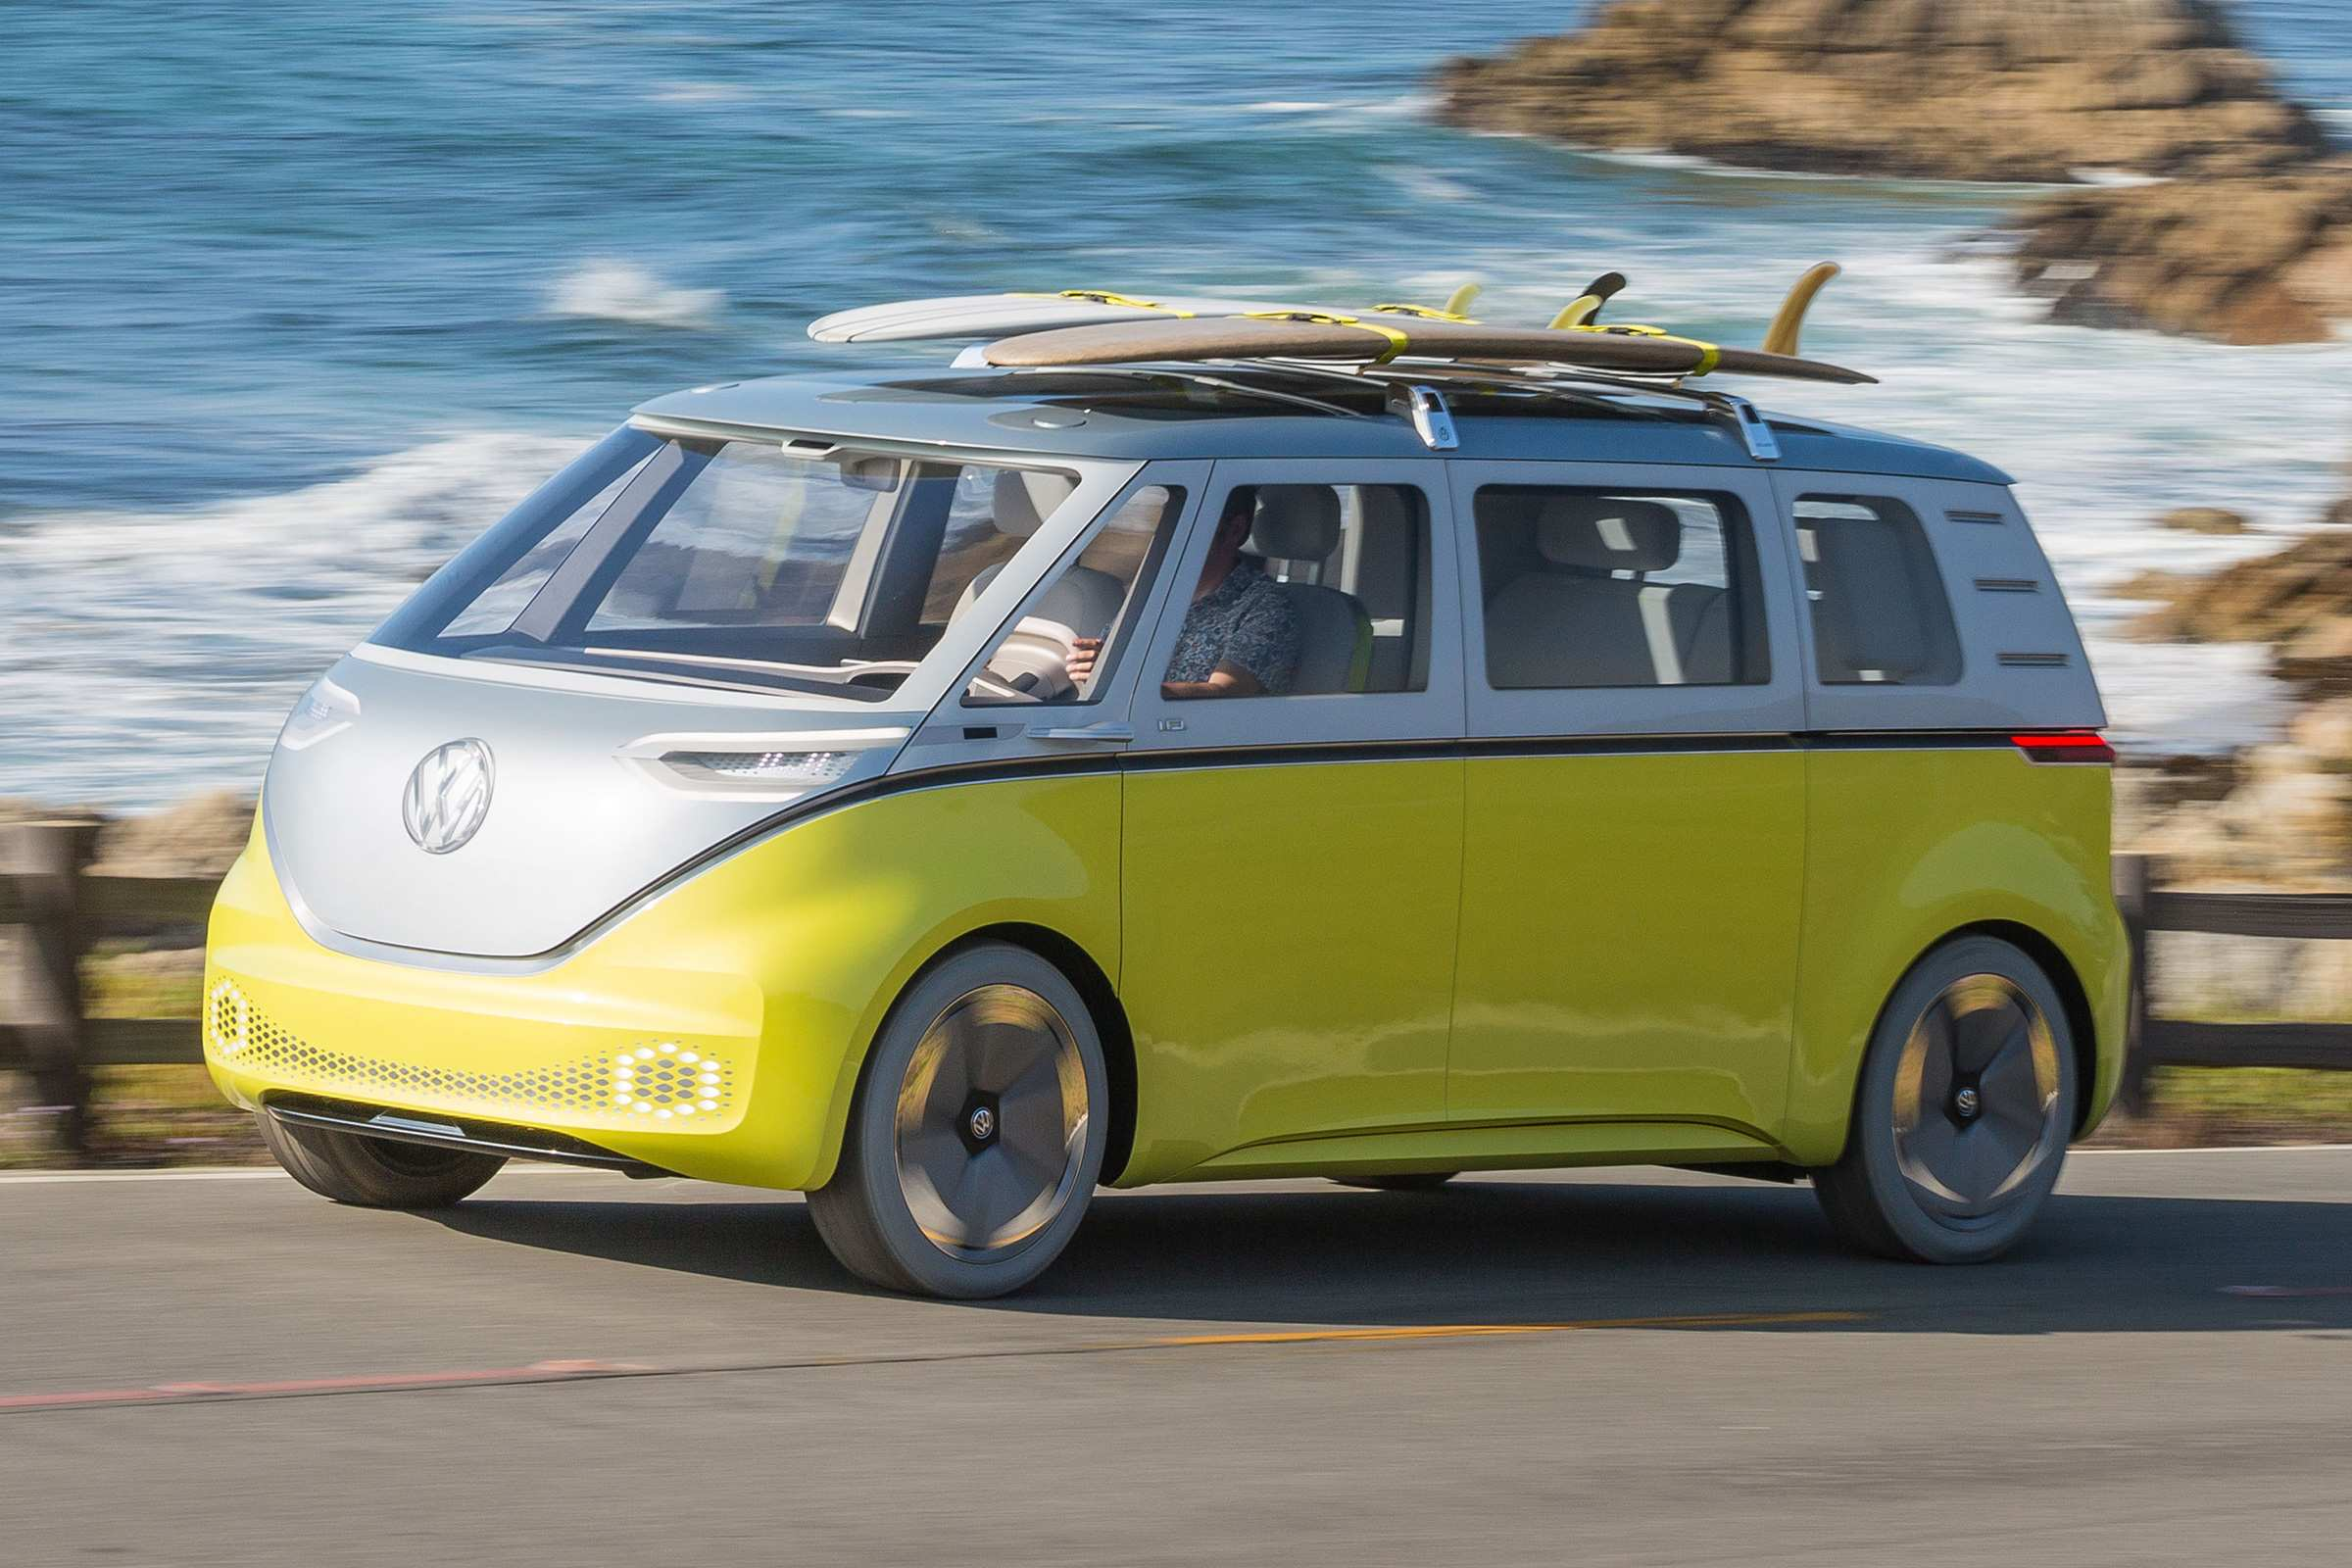 36 The Volkswagen Camper Van 2020 Photos